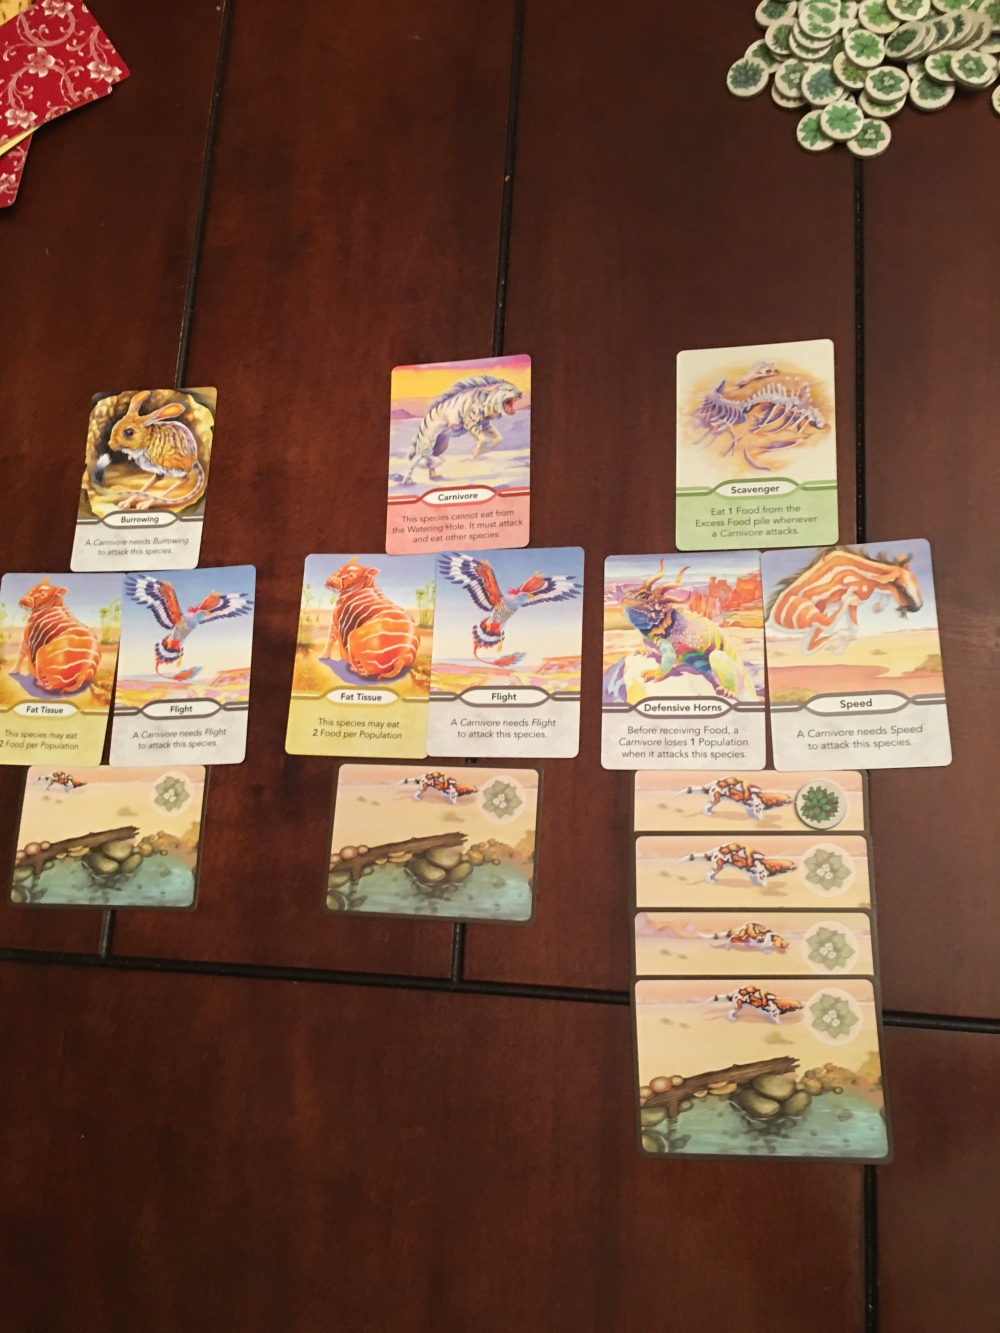 One player's assortment of three different species with varying traits.